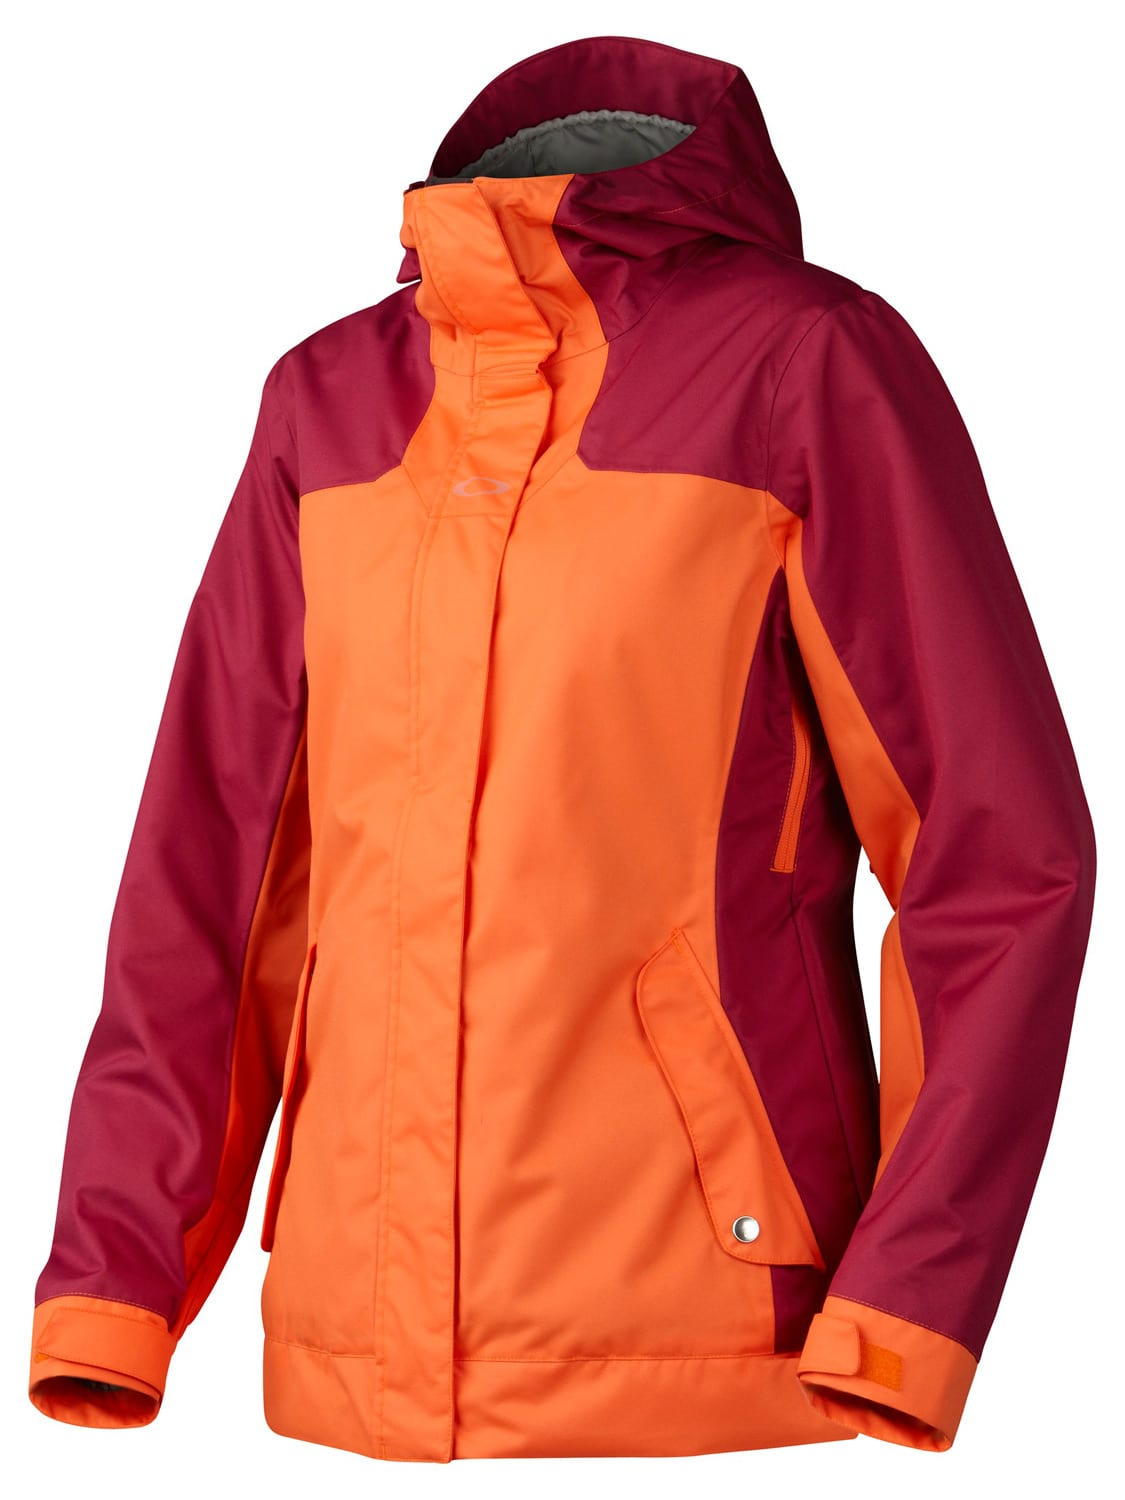 Oakley Brookside Snowboard Jacket - On Sale Oakley Womens Snowboard Jackets - Snowboarding Jacket